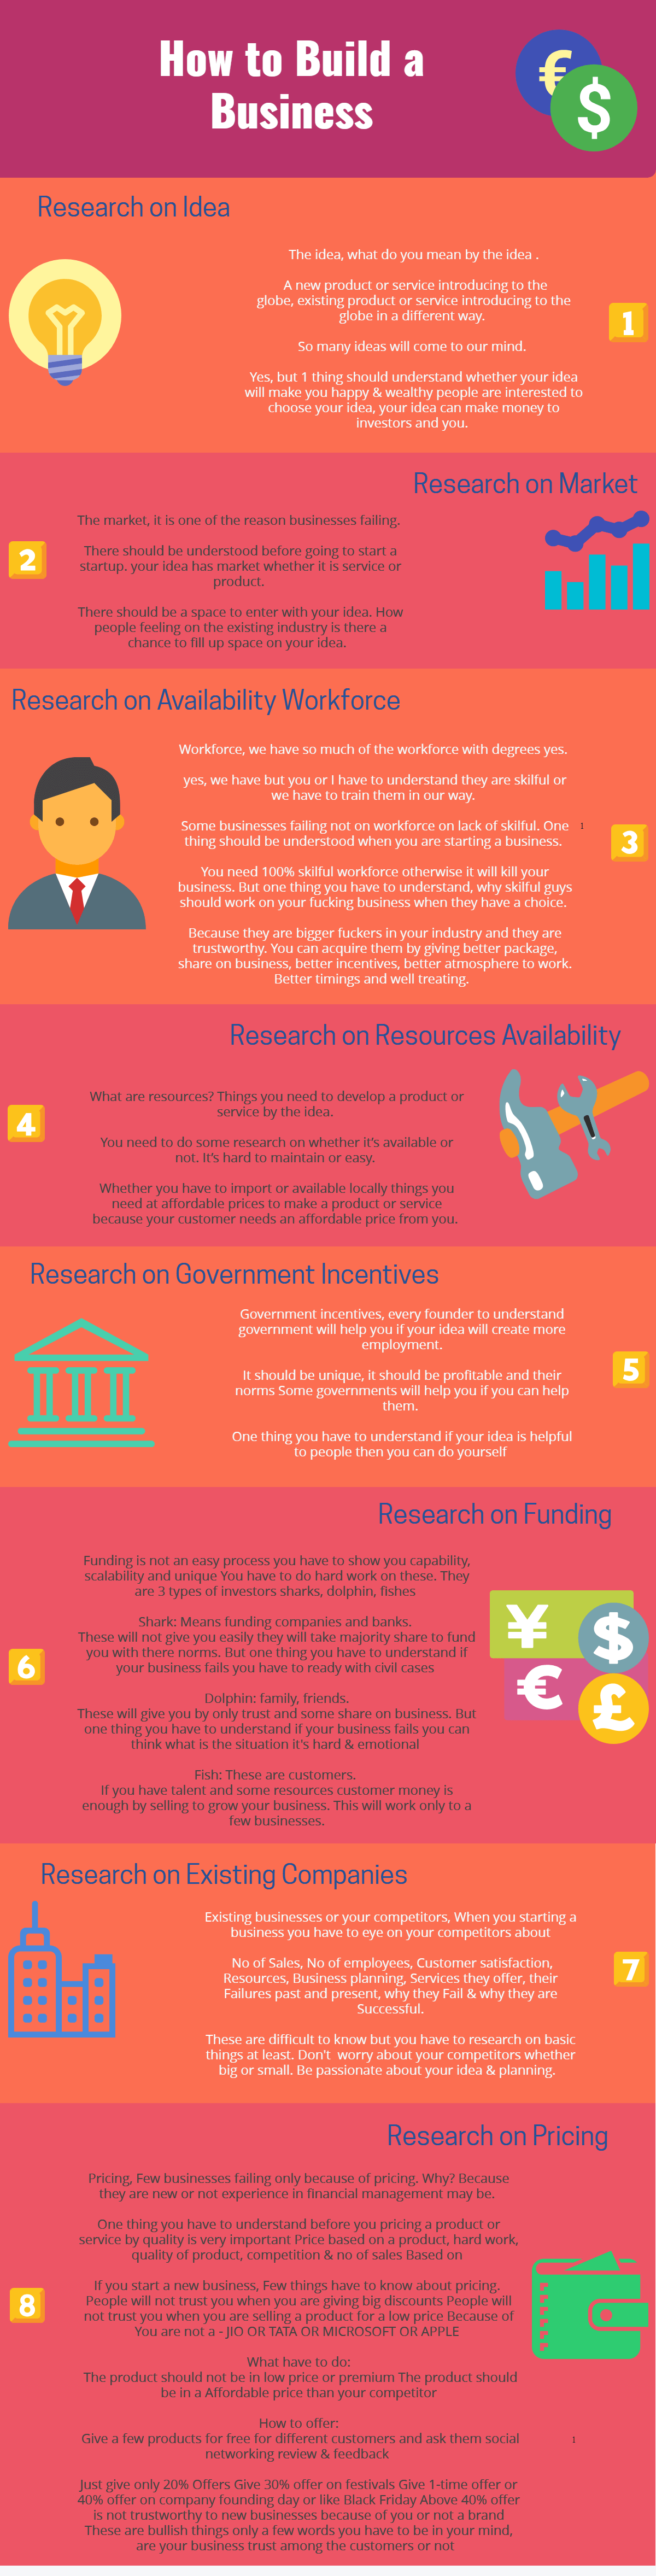 How To Build A Business Empire From Scratch Infographic